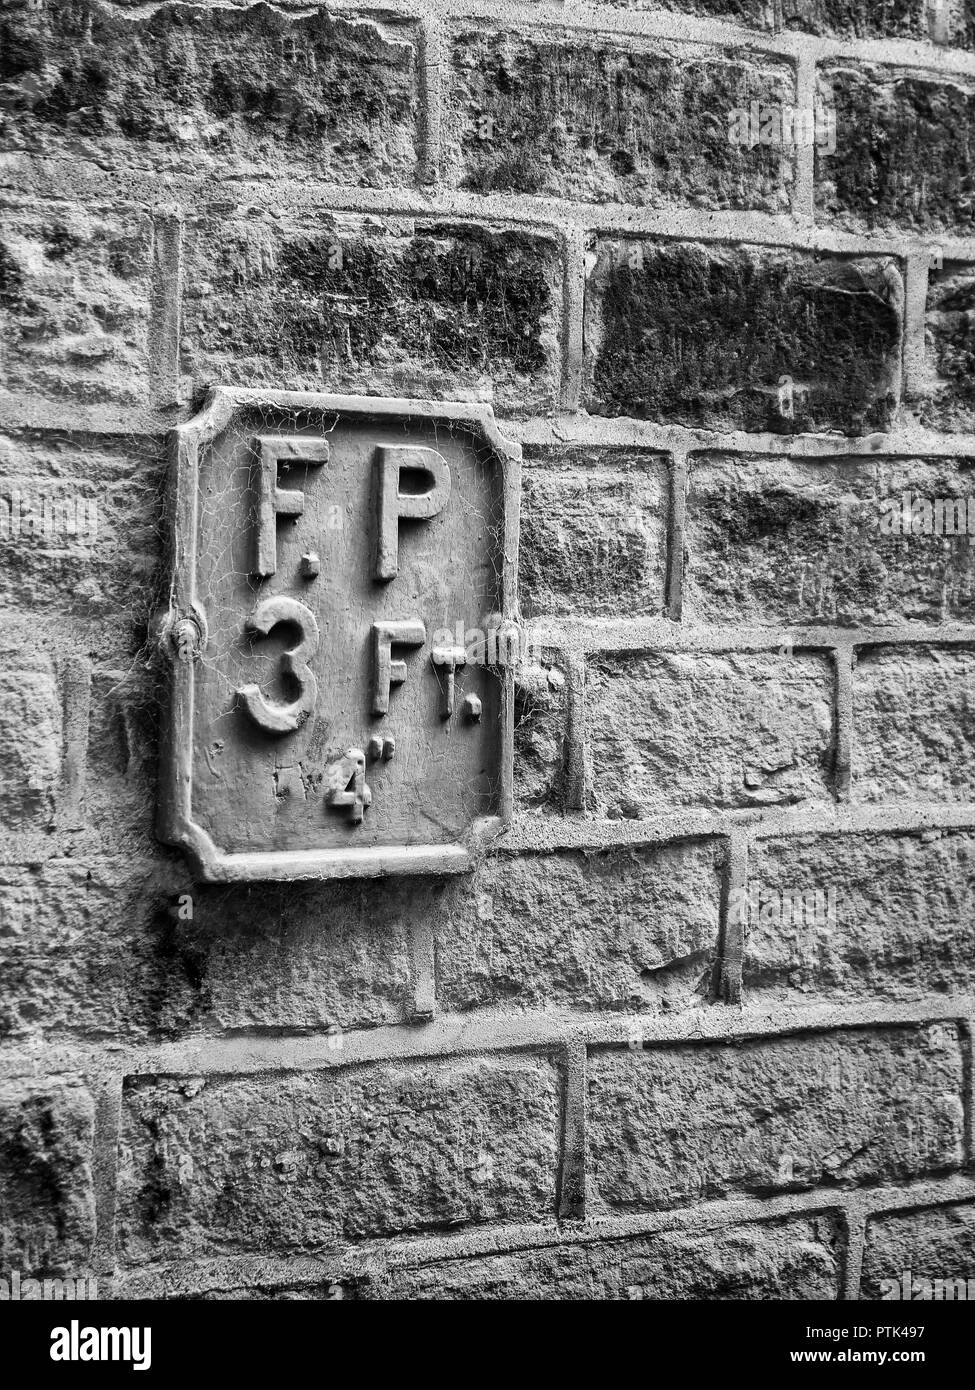 A historic fire point sign on a building at Saltaire, Bradford, Yorkshire - Stock Image